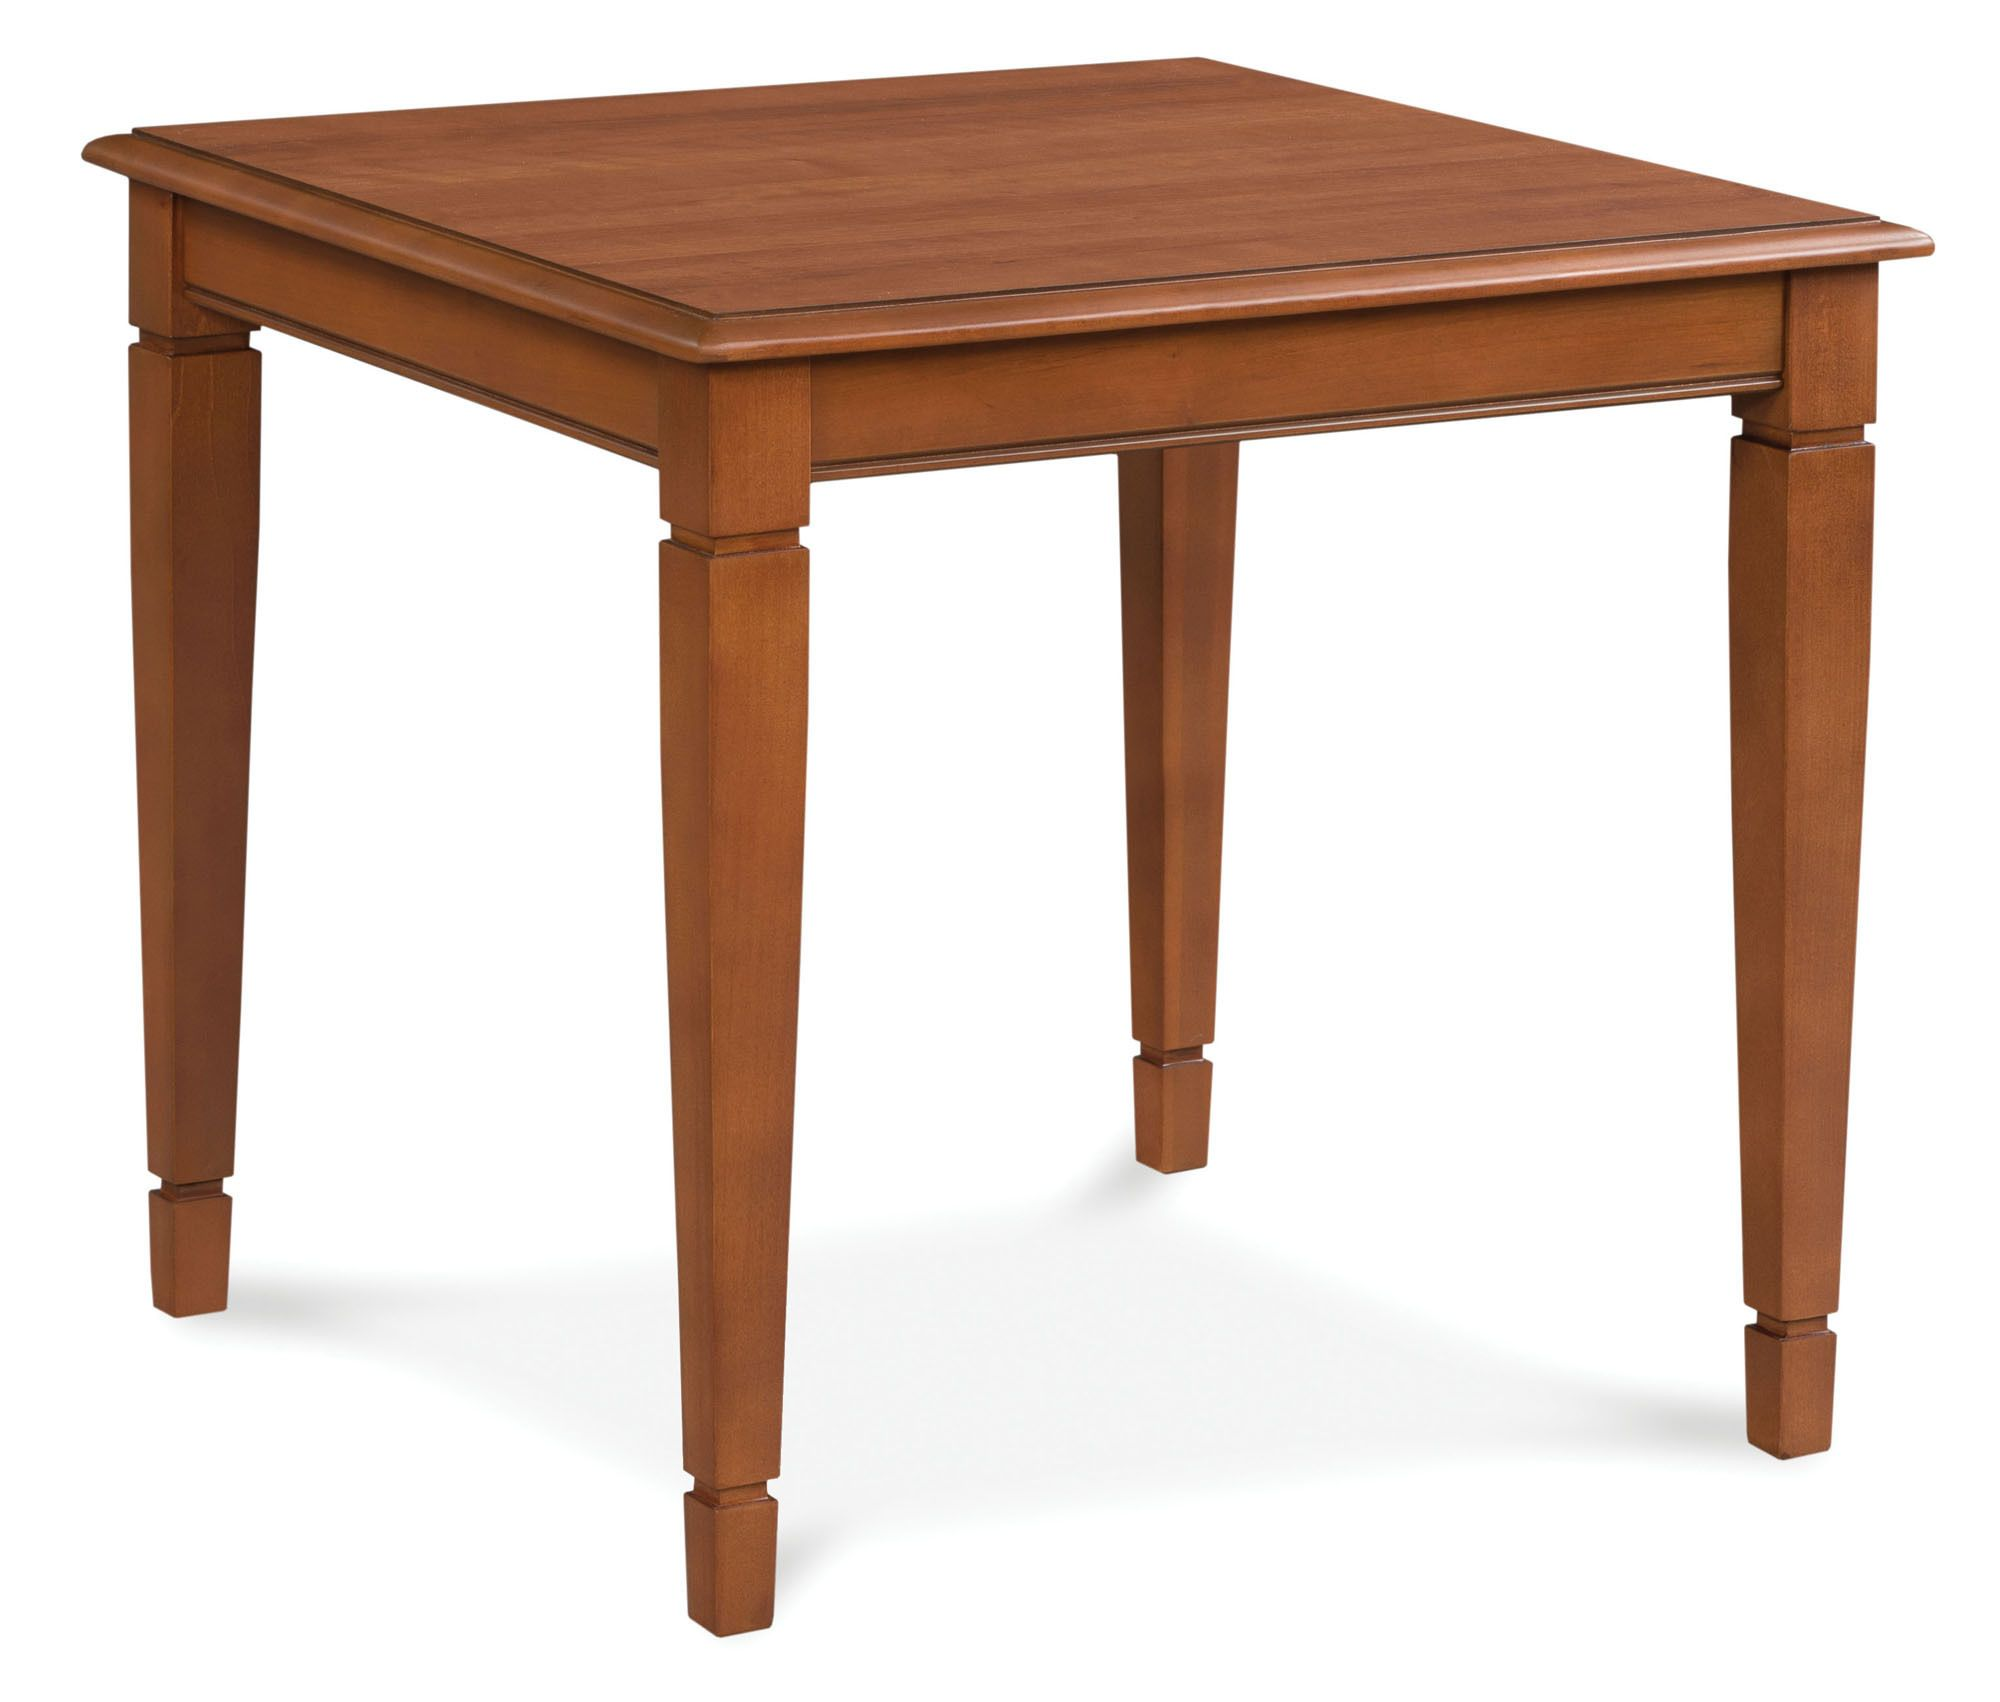 Square End Table In Cherry | Fairfield Chair Company | Home Gallery Stores